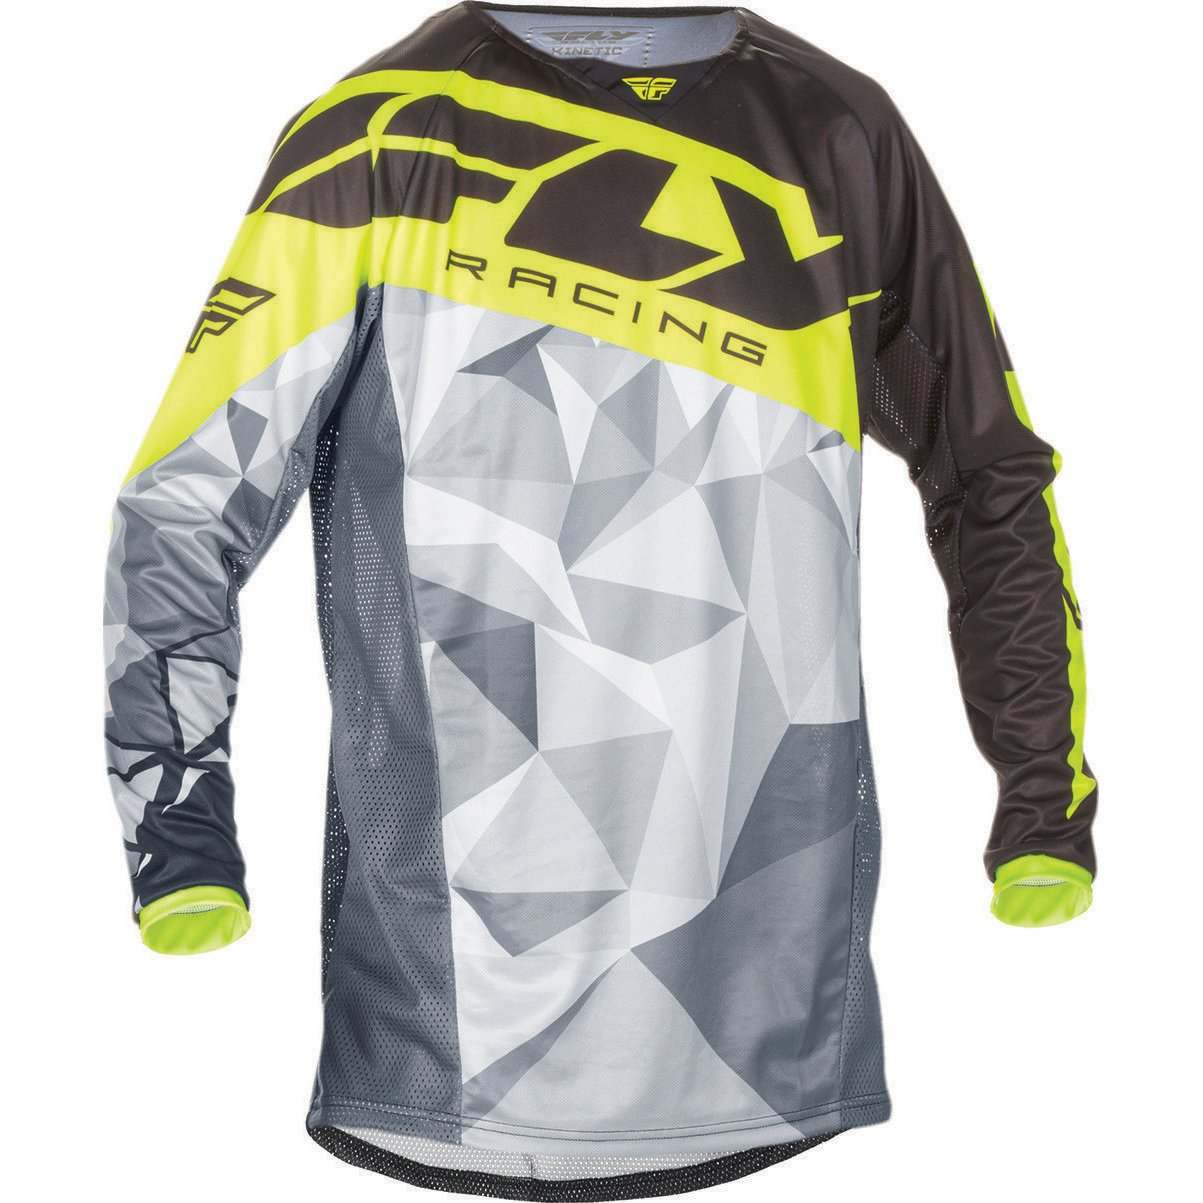 Gé né rique Fly Racing 2017 Kinetic Crux Youth Motocross Jersey